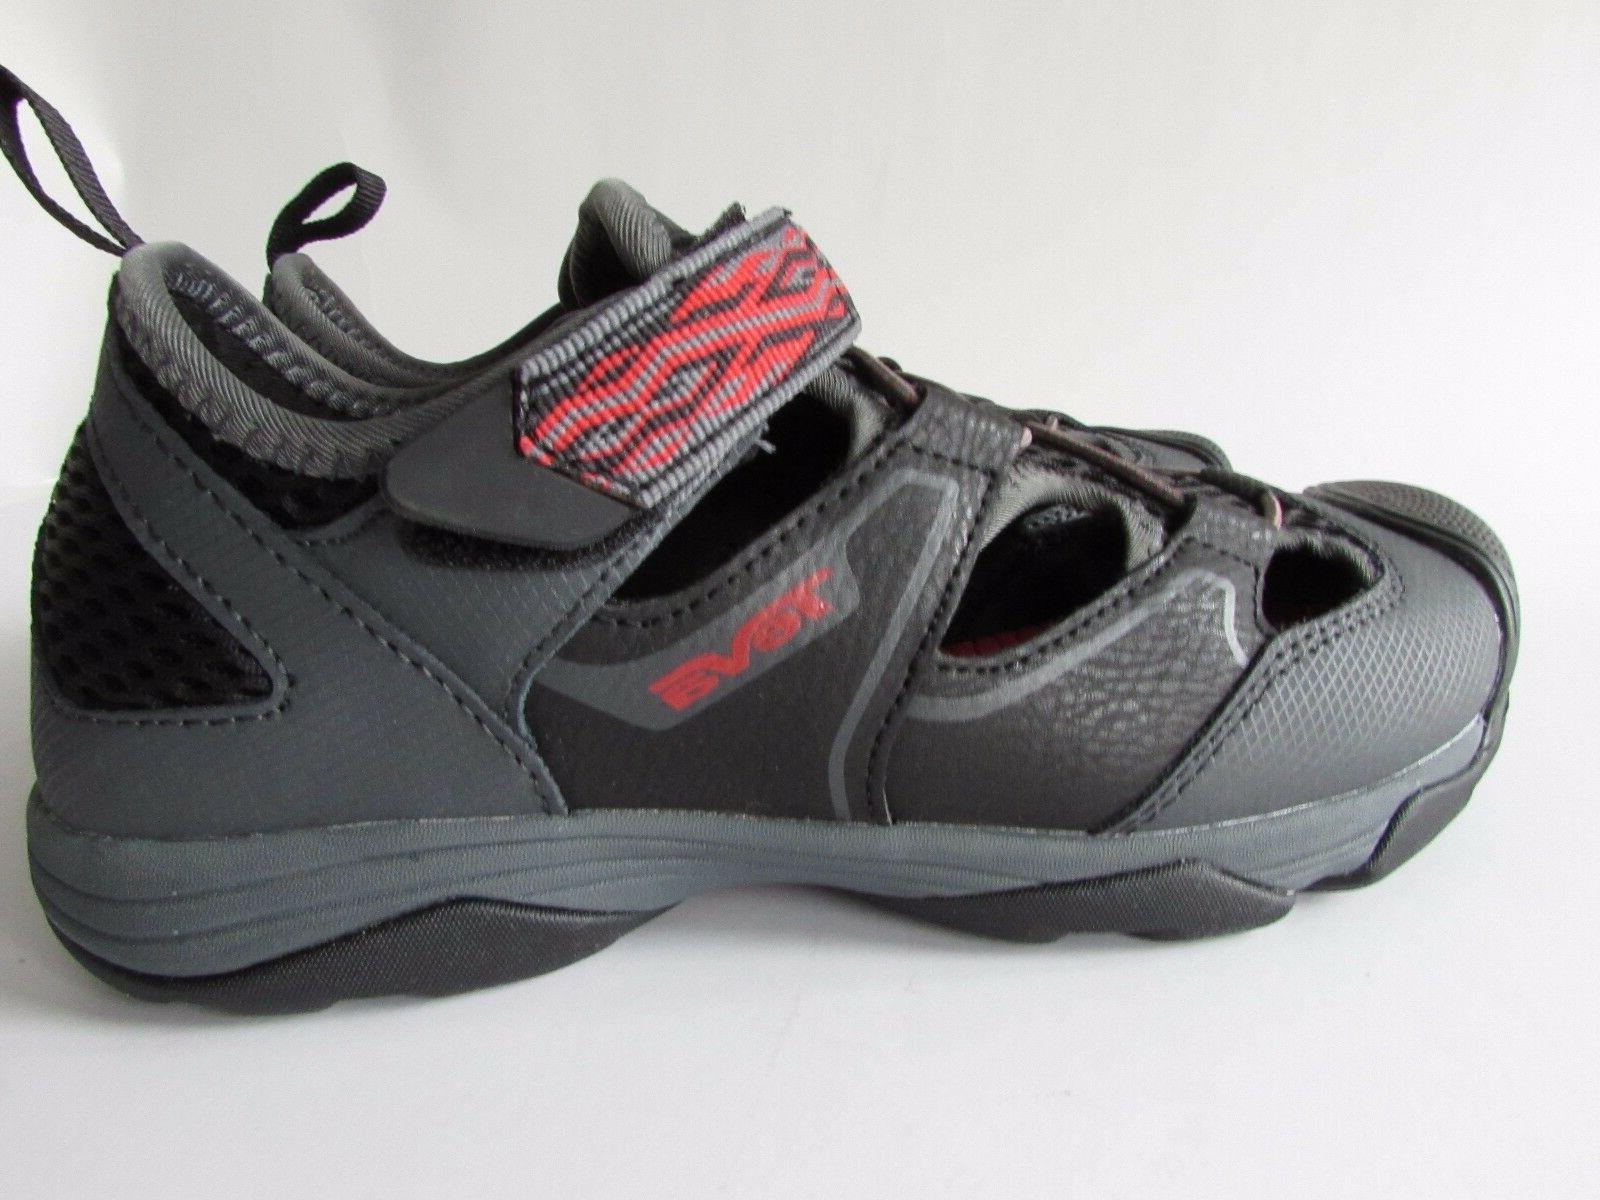 TEVA Sandals Water size 5 NEW